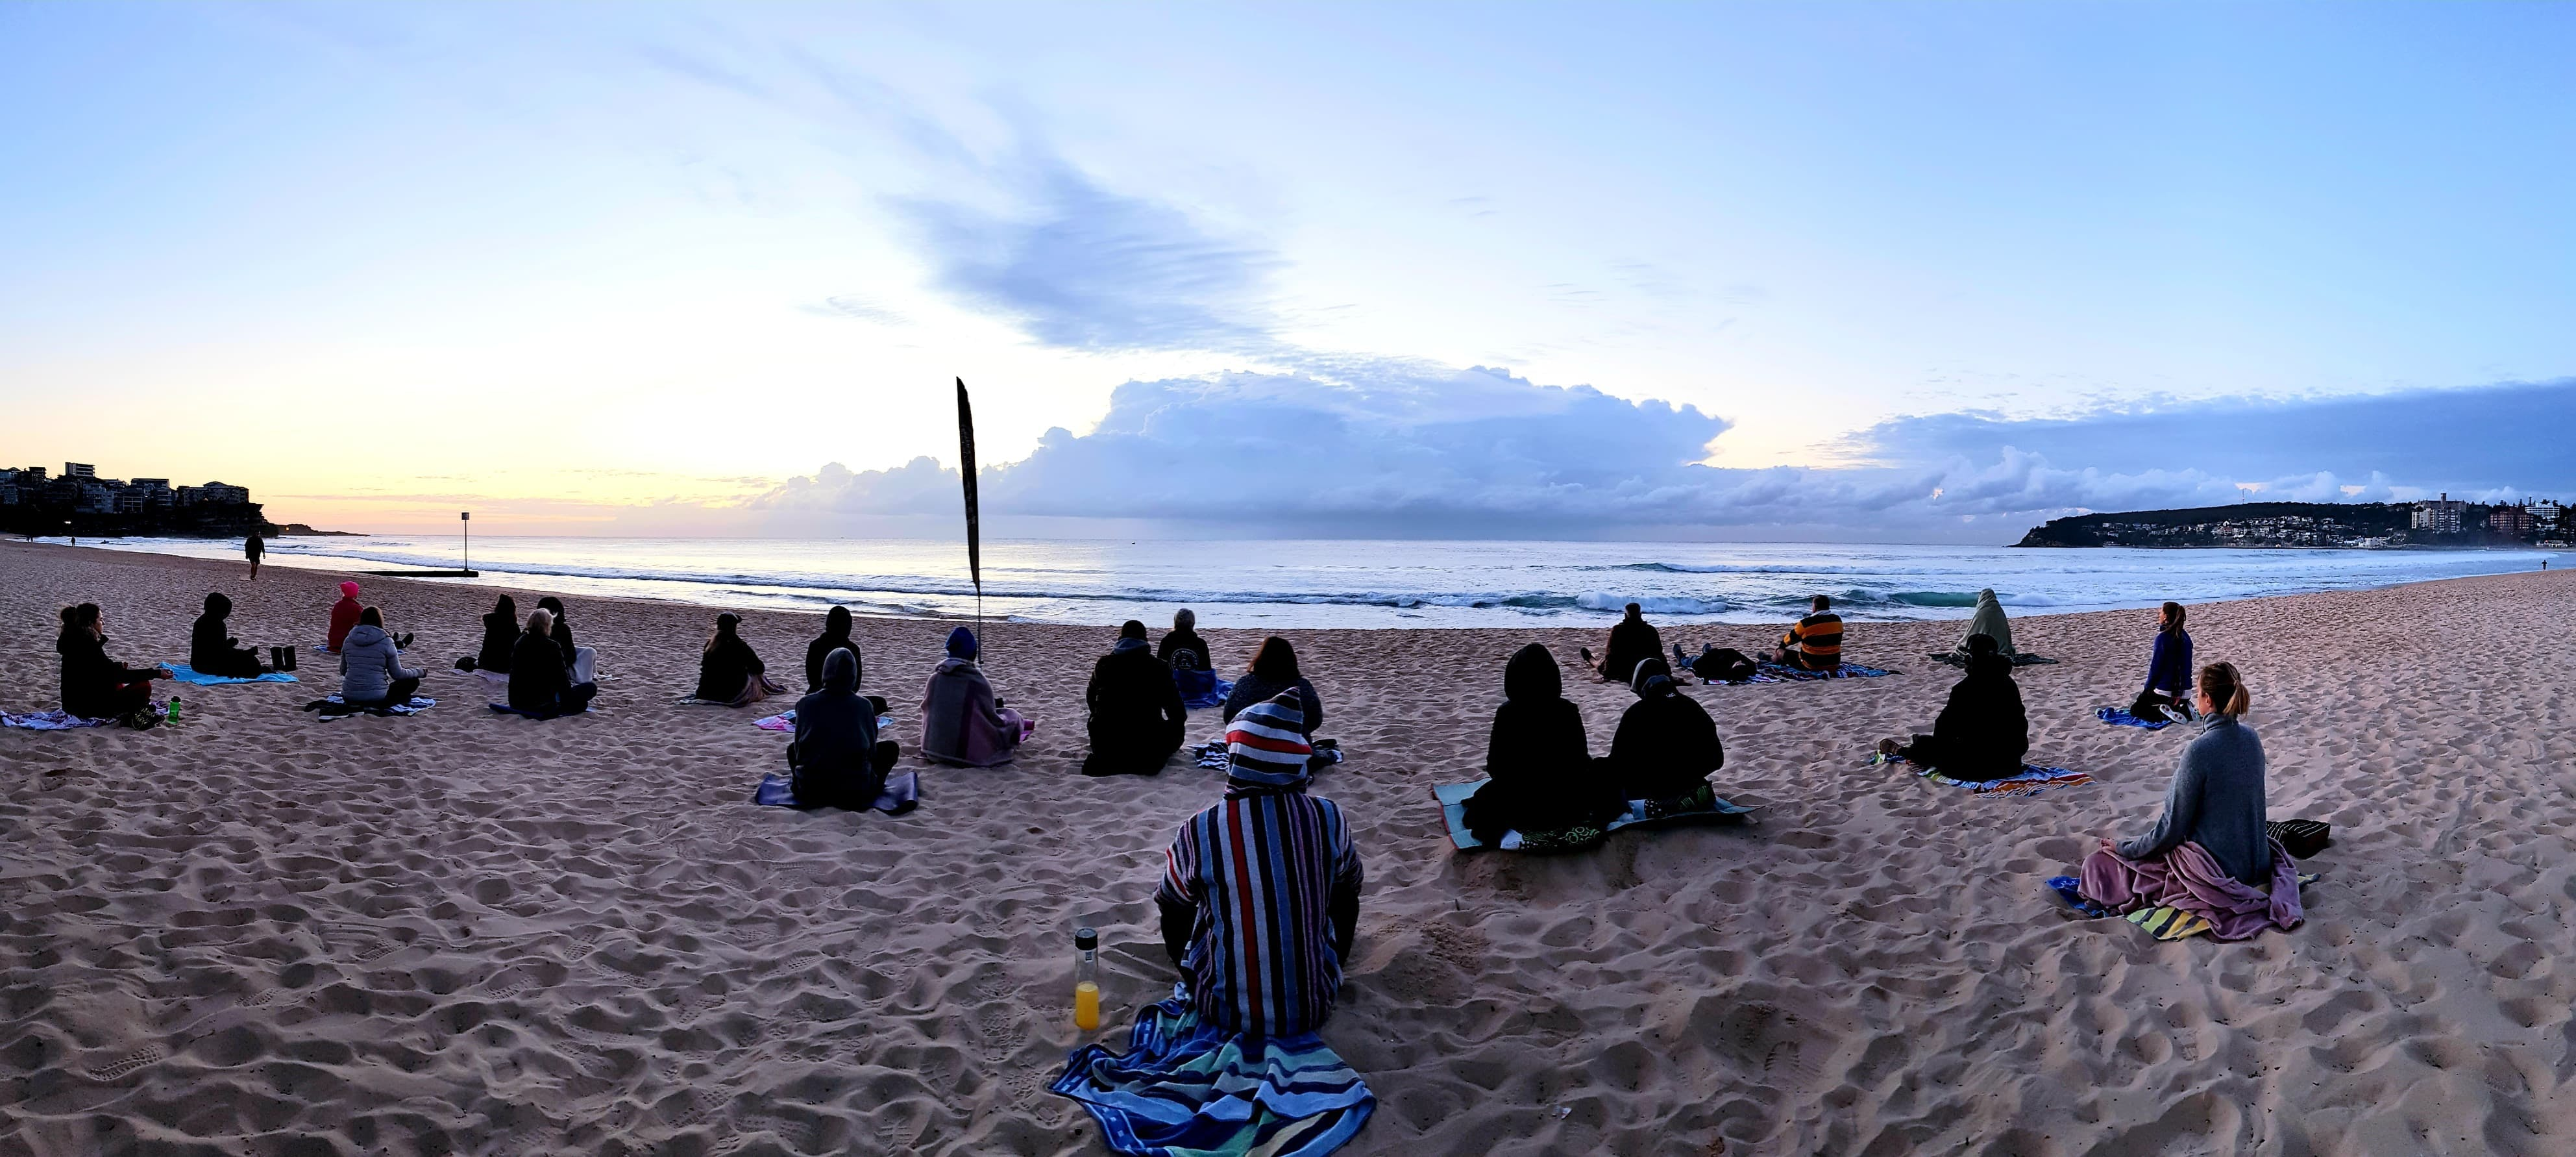 Making Meditation Mainstream Free Beach Meditation Sessions - Avalon Beach - Tourism Brisbane